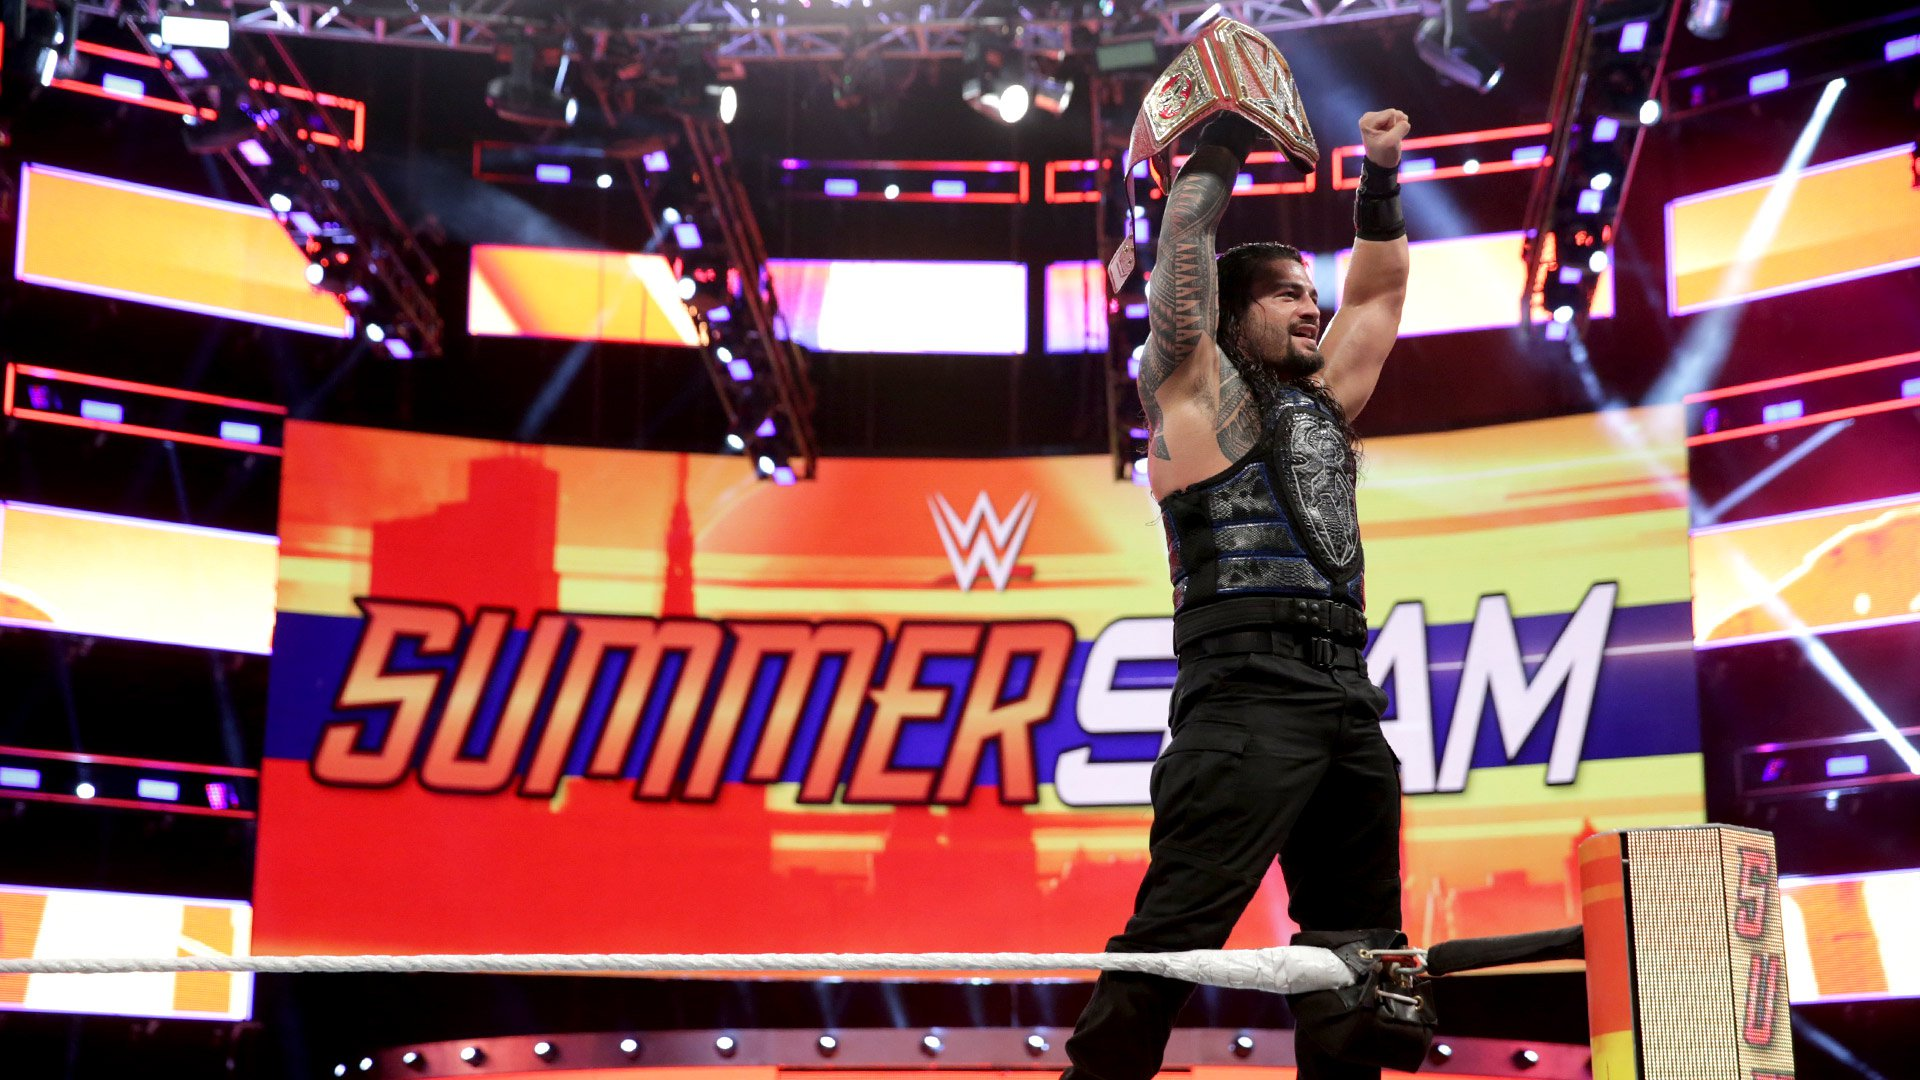 WWE Summerslam 2018 Review 08/19/2018